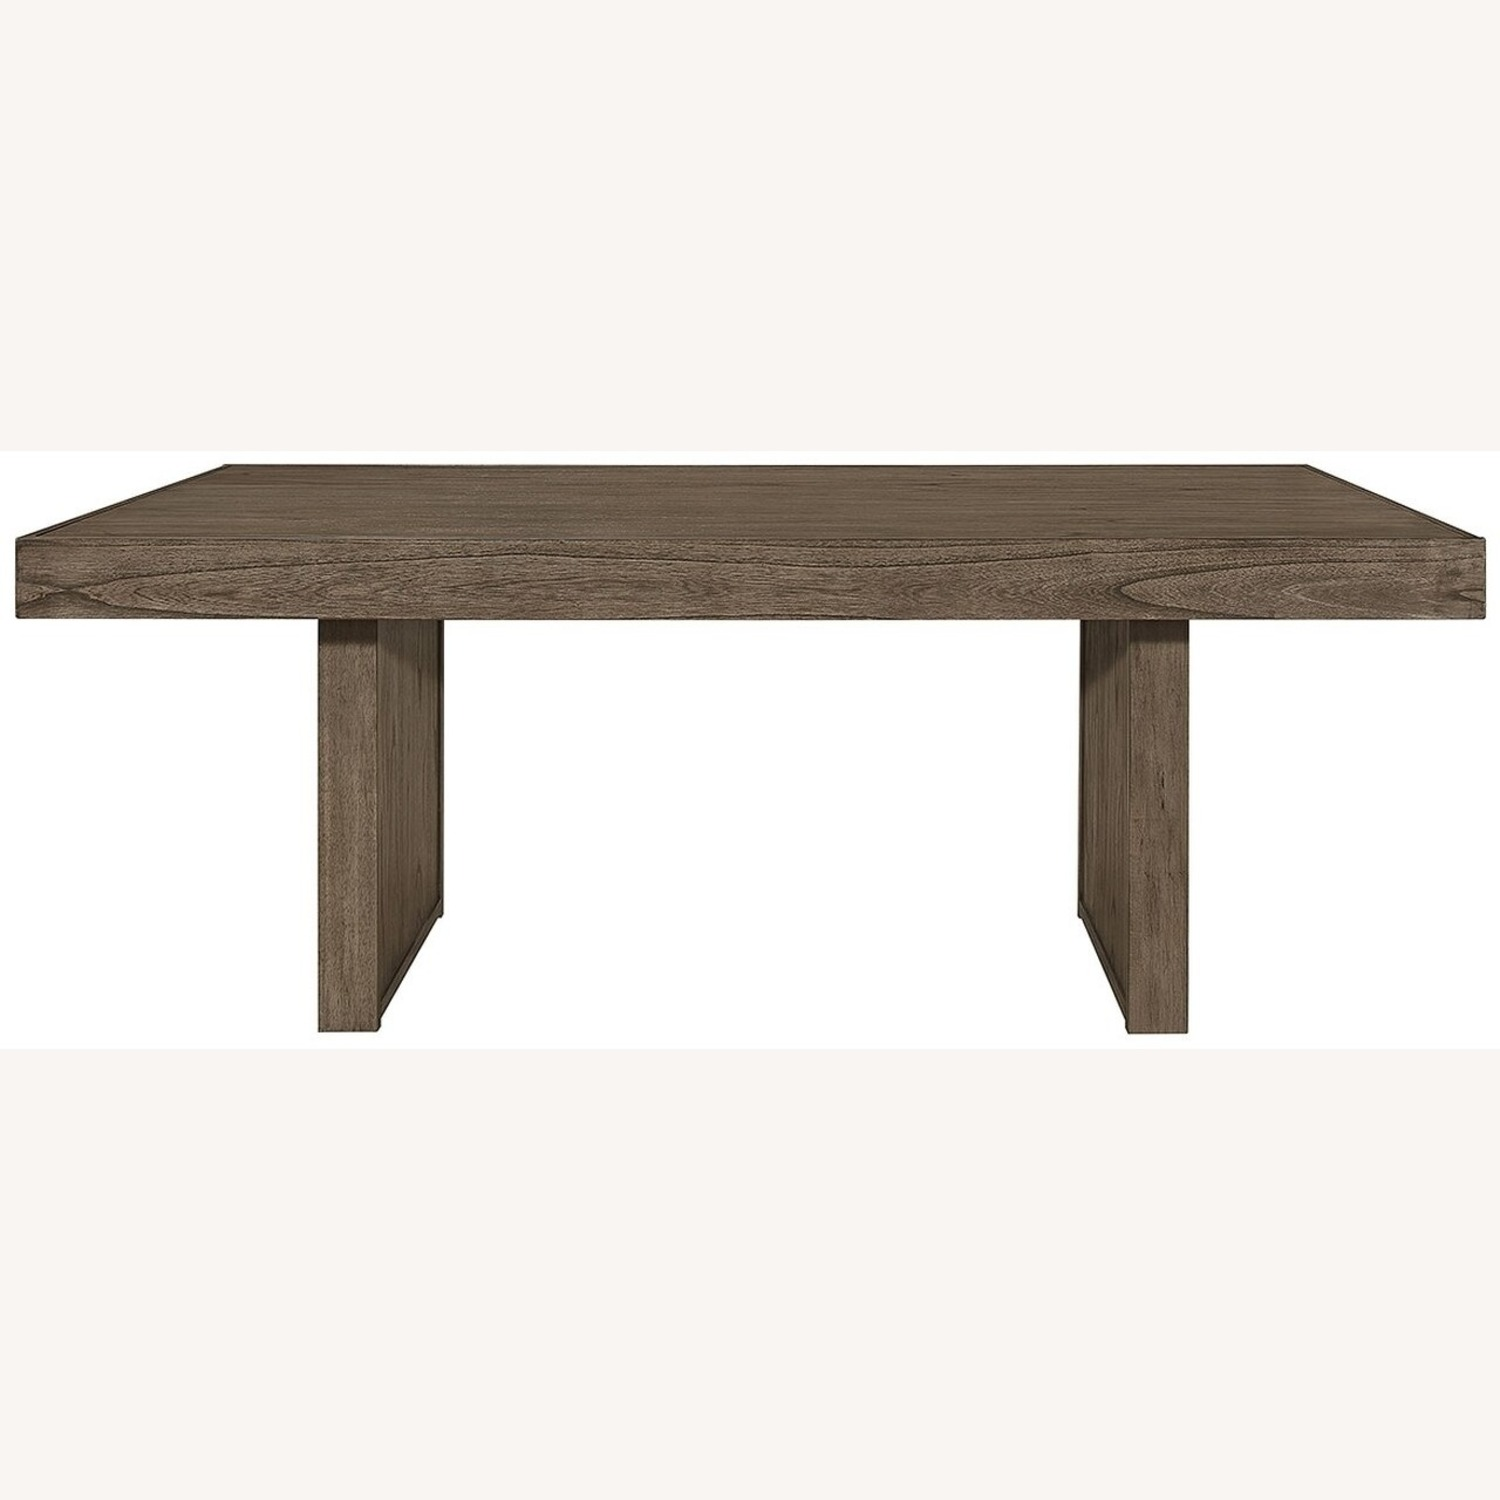 Dining Table Made From Wheat Brown Hardwood - image-0